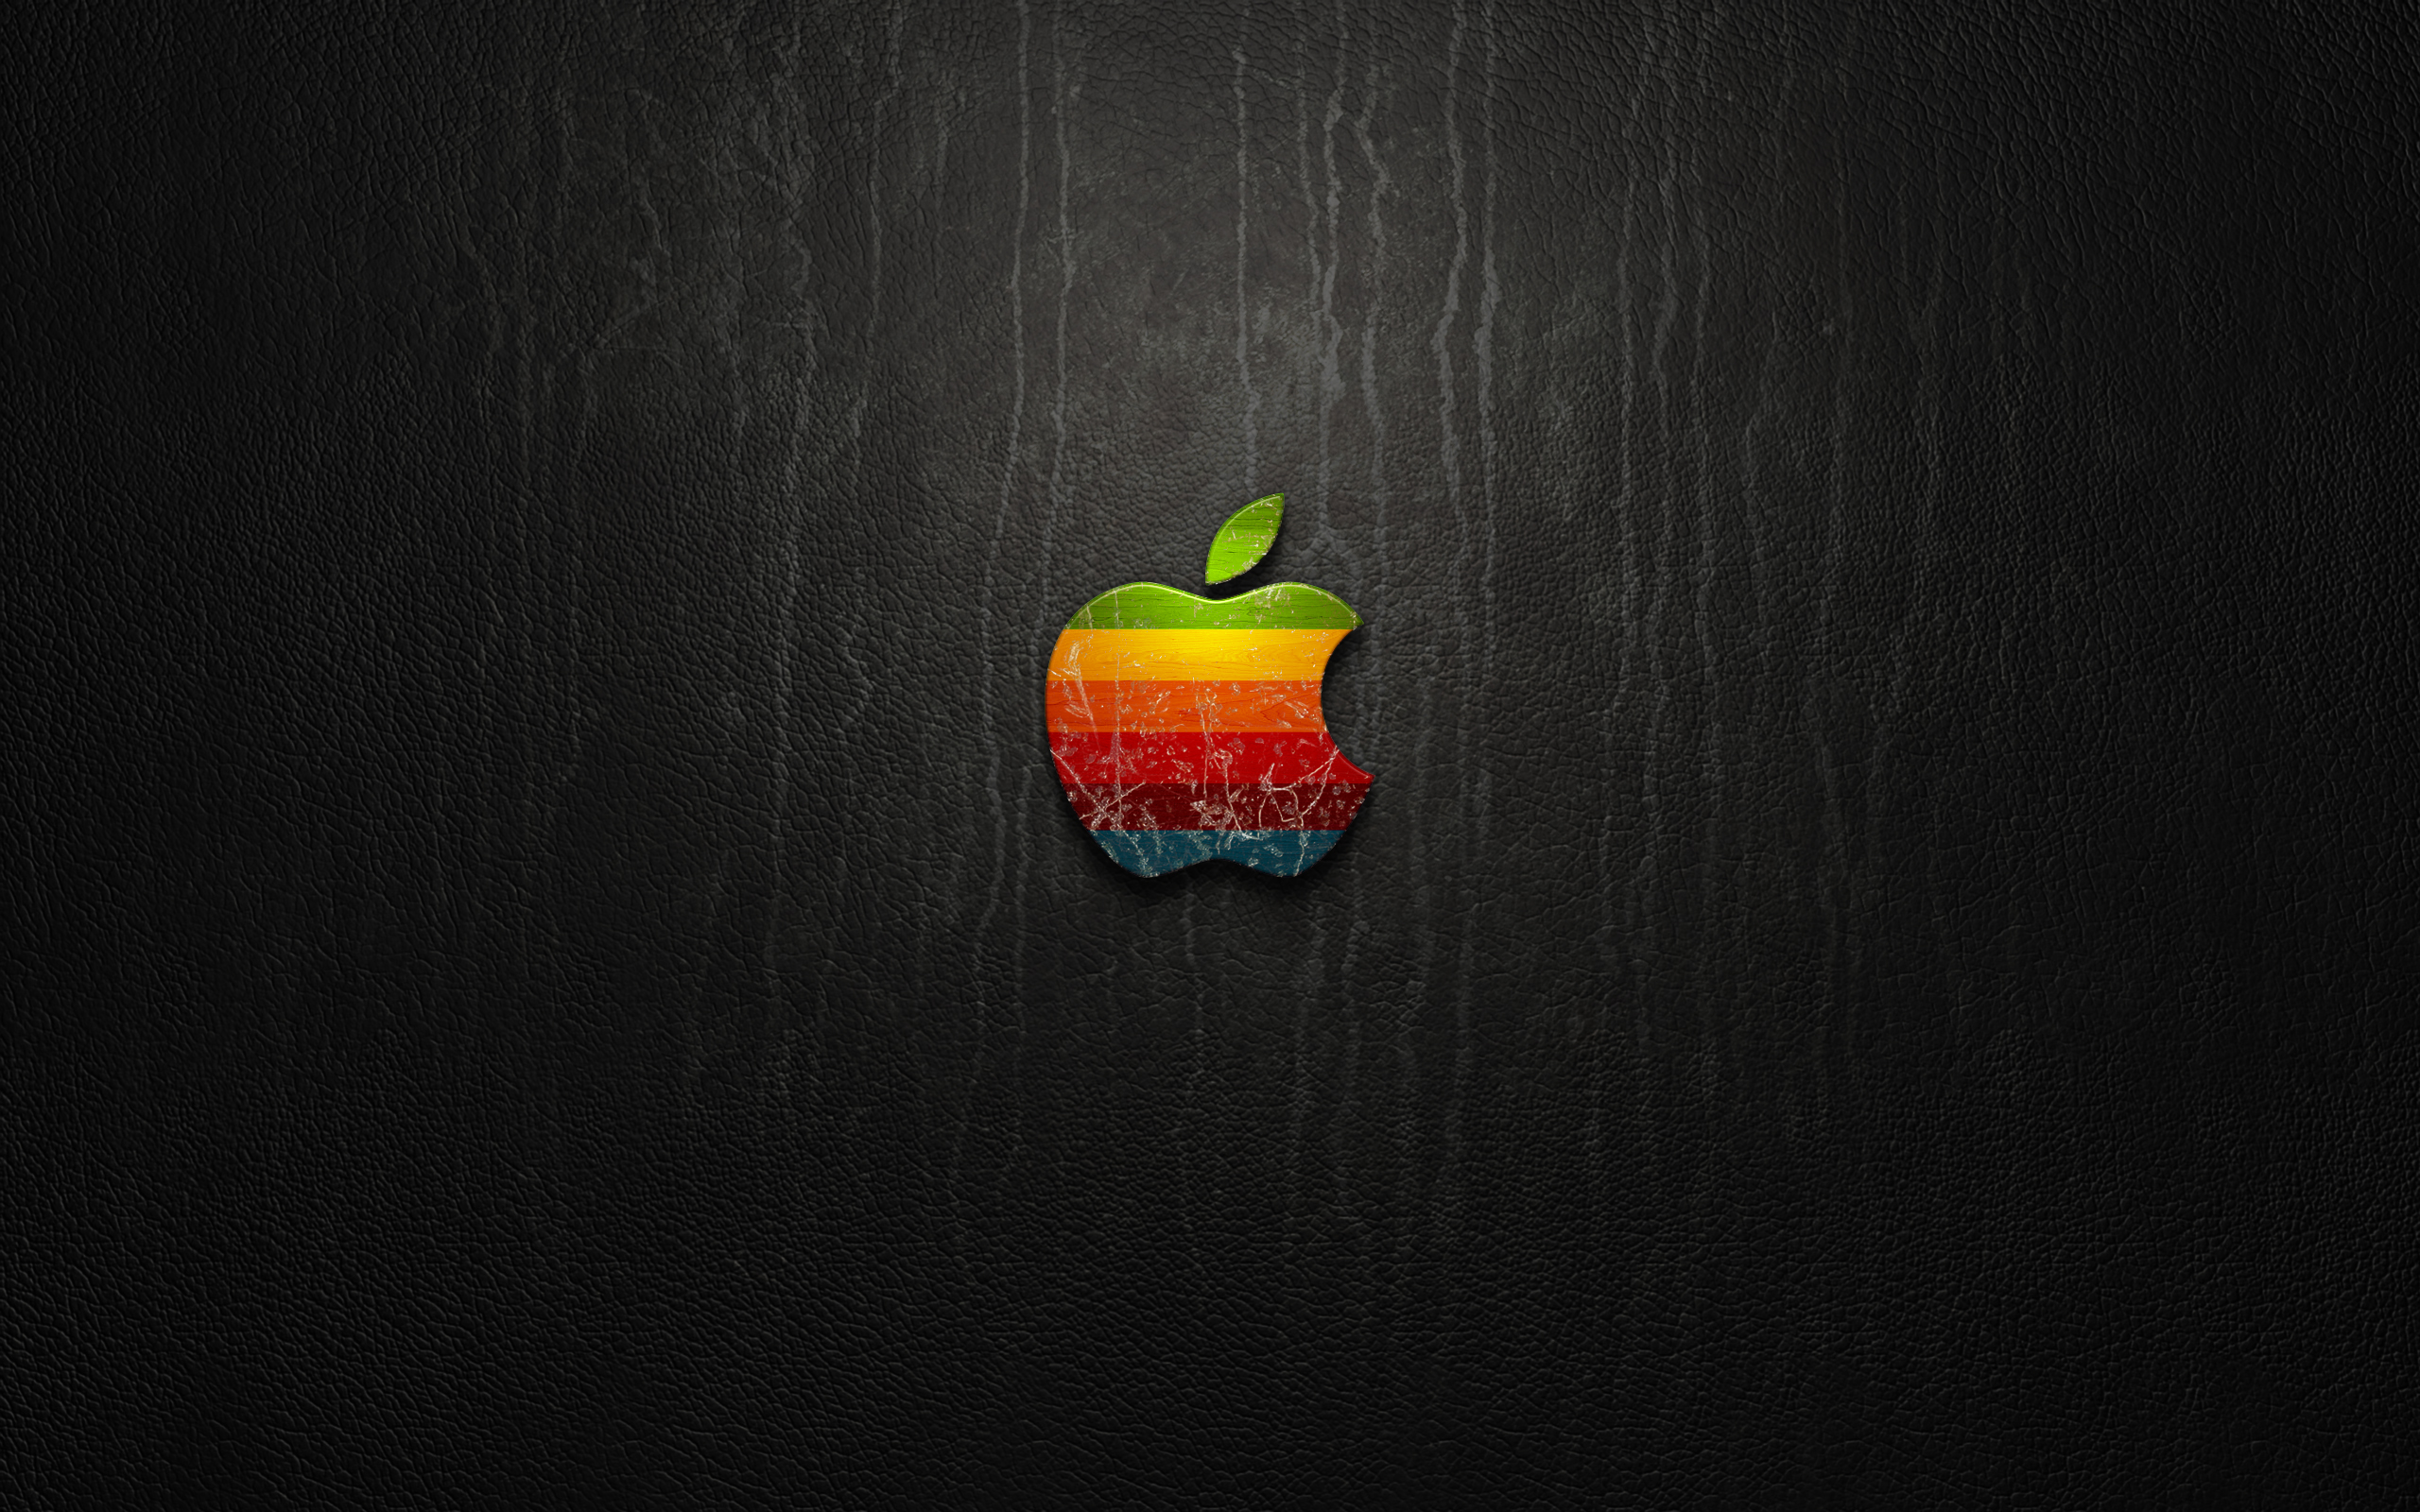 HD Wallpapers HD Apple Logo